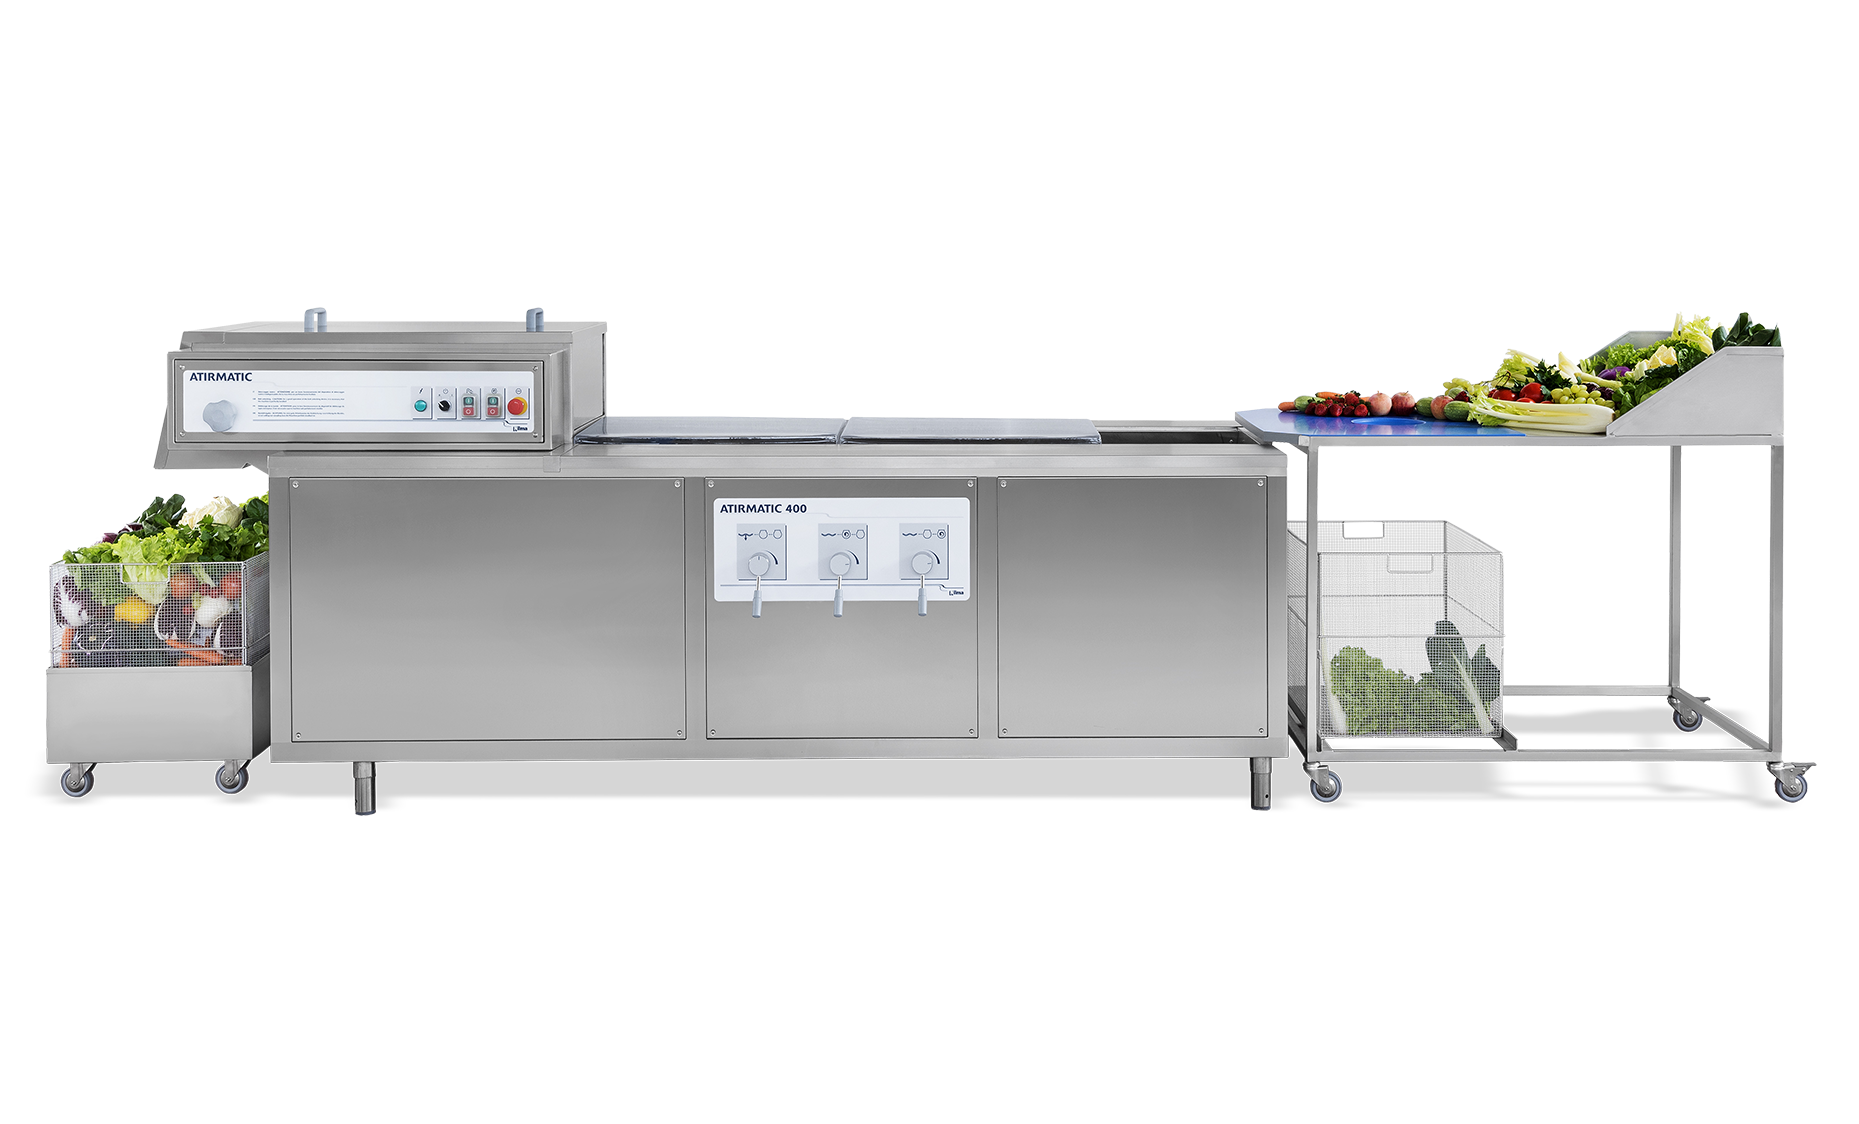 Atirmatic- CONTINUOUS VEGETABLE WASHER Nilma